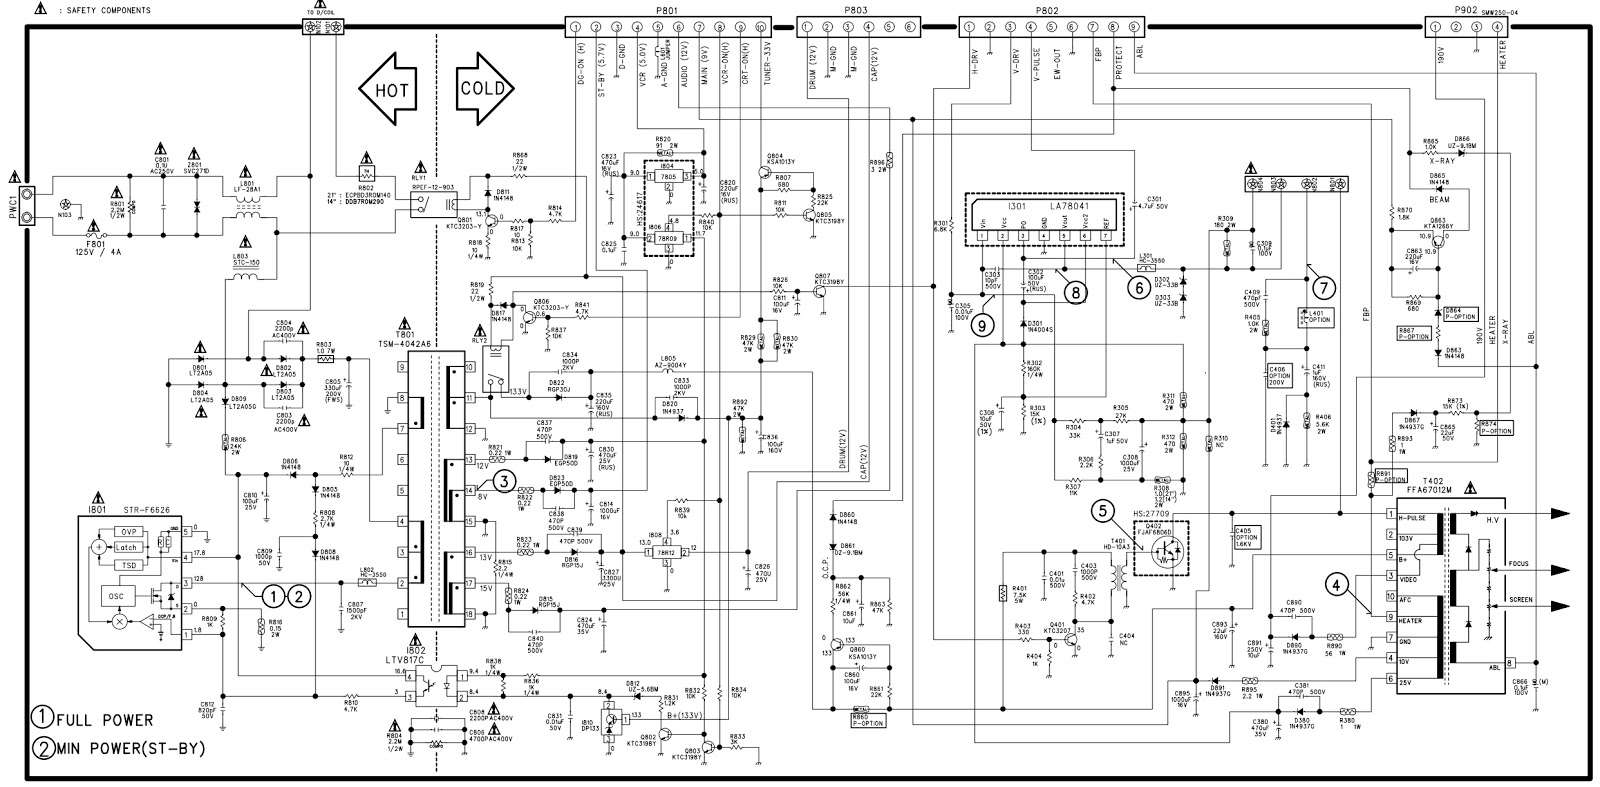 Sony Tv Circuit Diagram | #1 Wiring Diagram Source